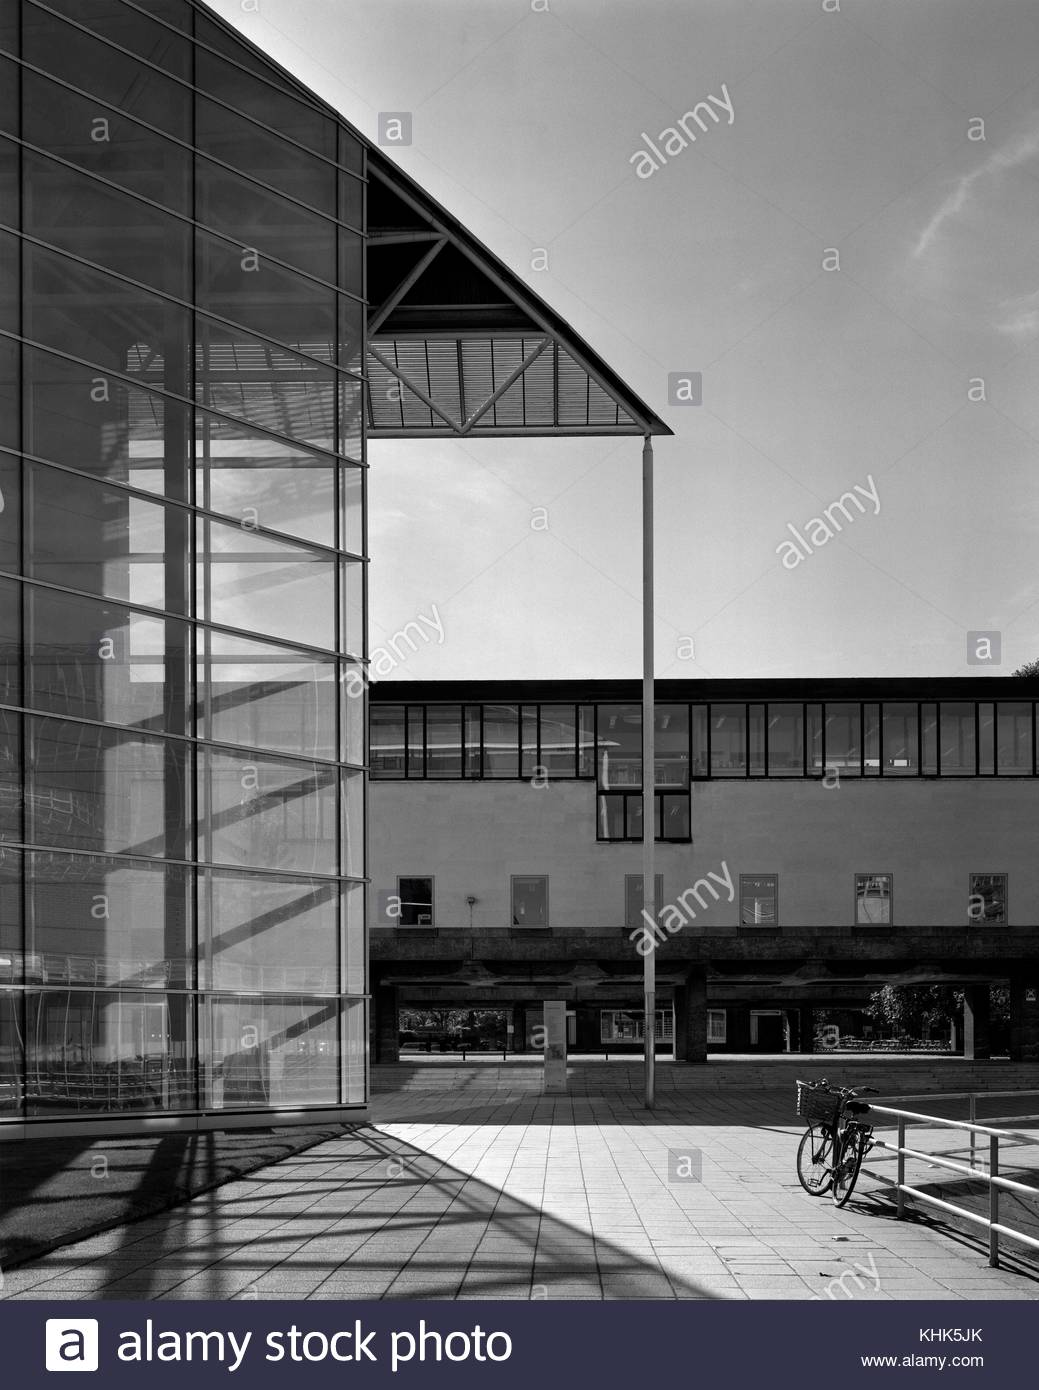 Cambridge University Faculty of Law on the Sidgwick Site - Stock Image